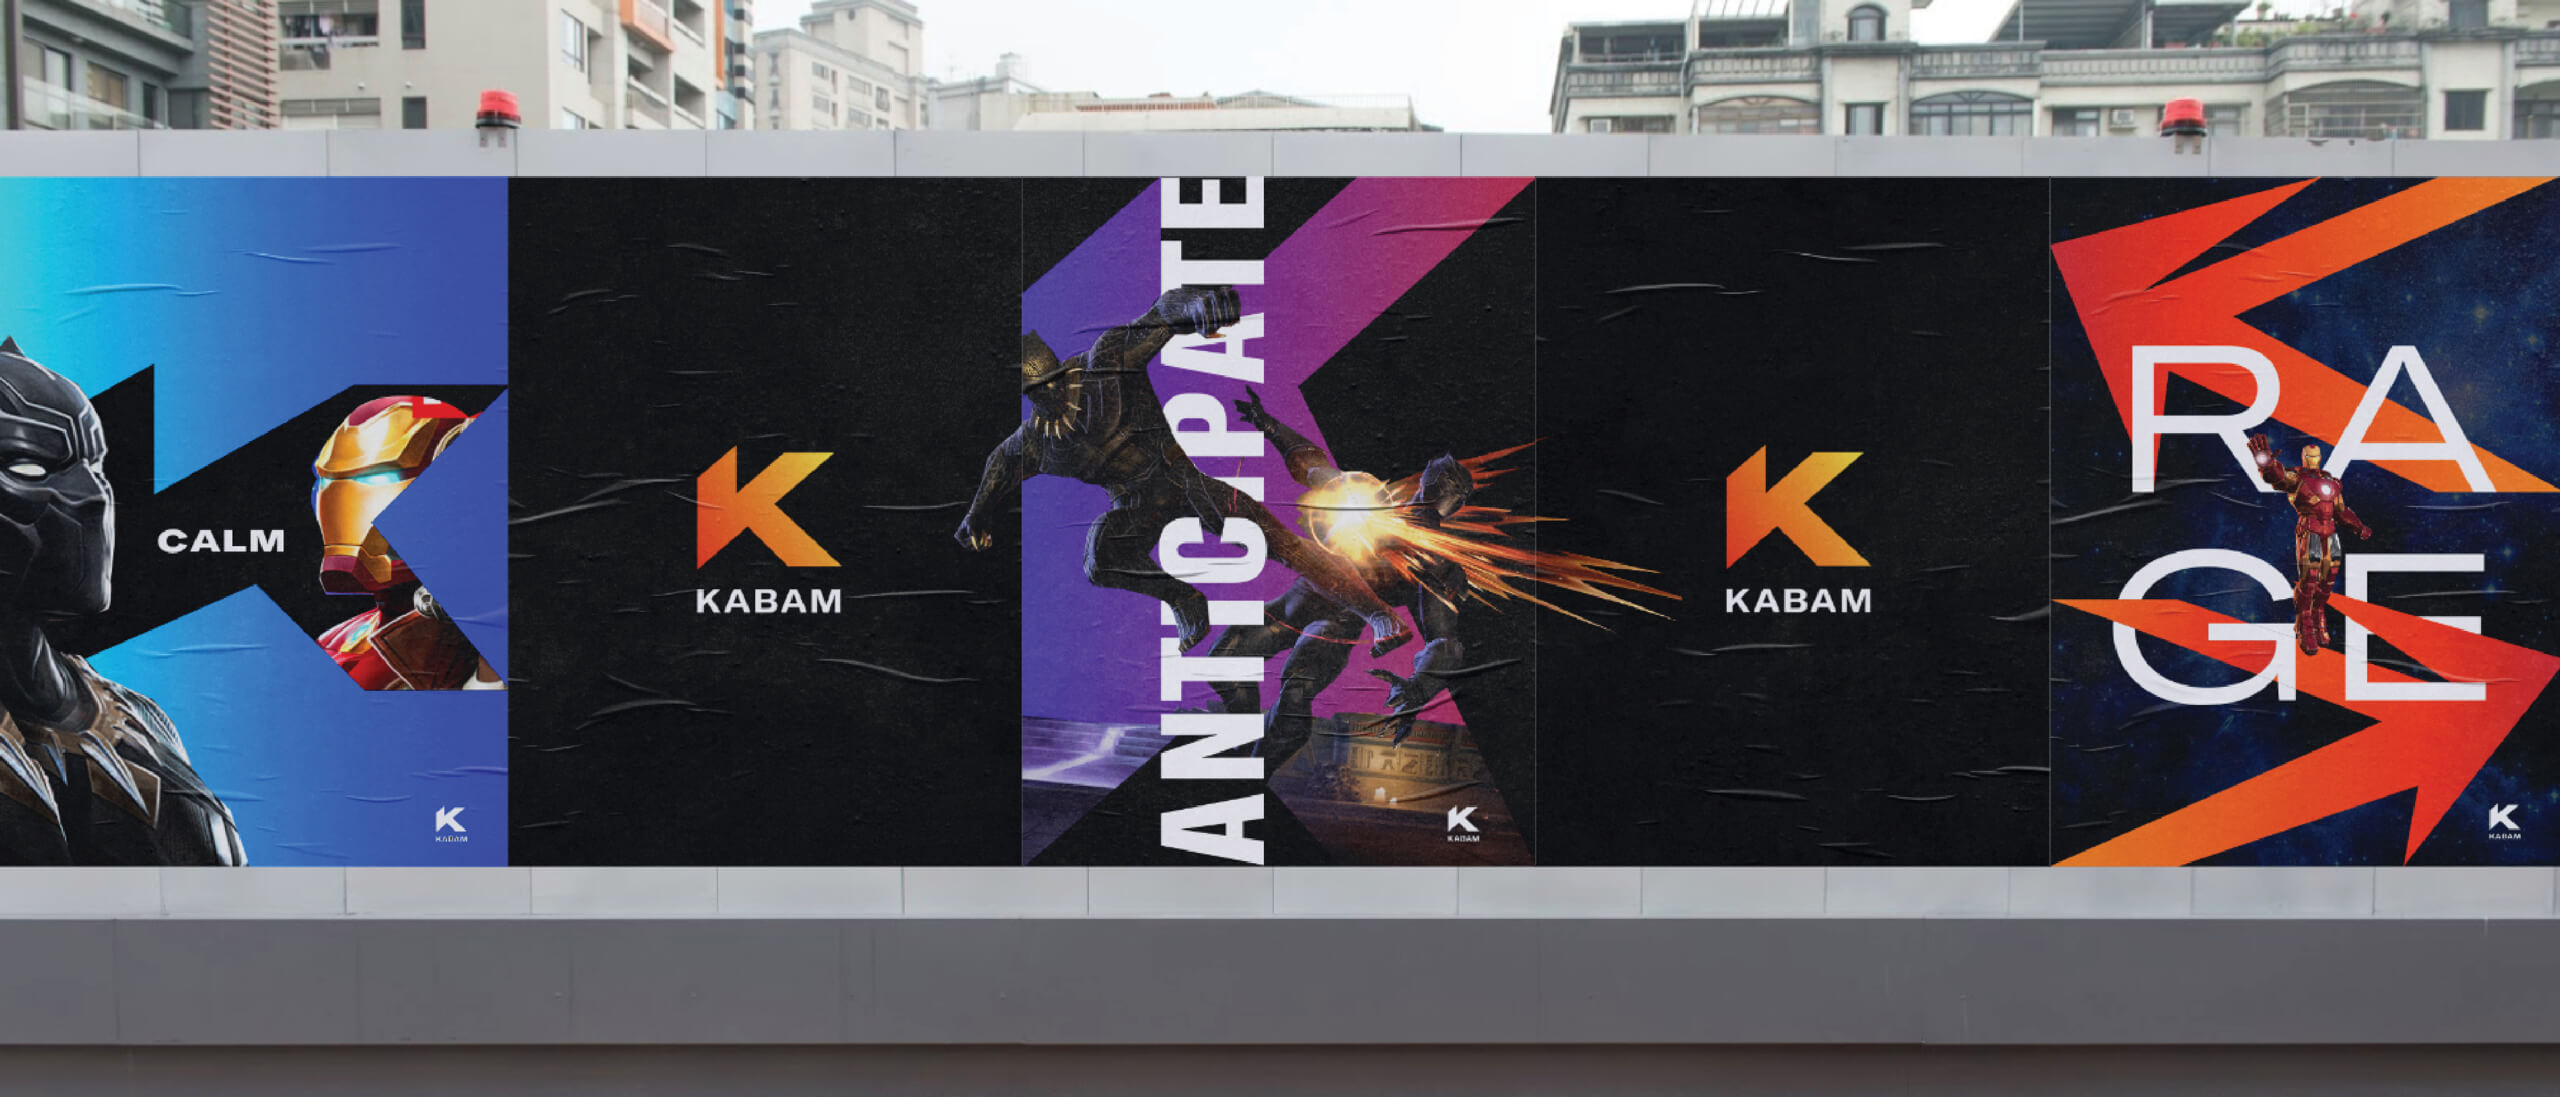 KABAM-Poster-Wall_Marvel-Contest-of-Champions